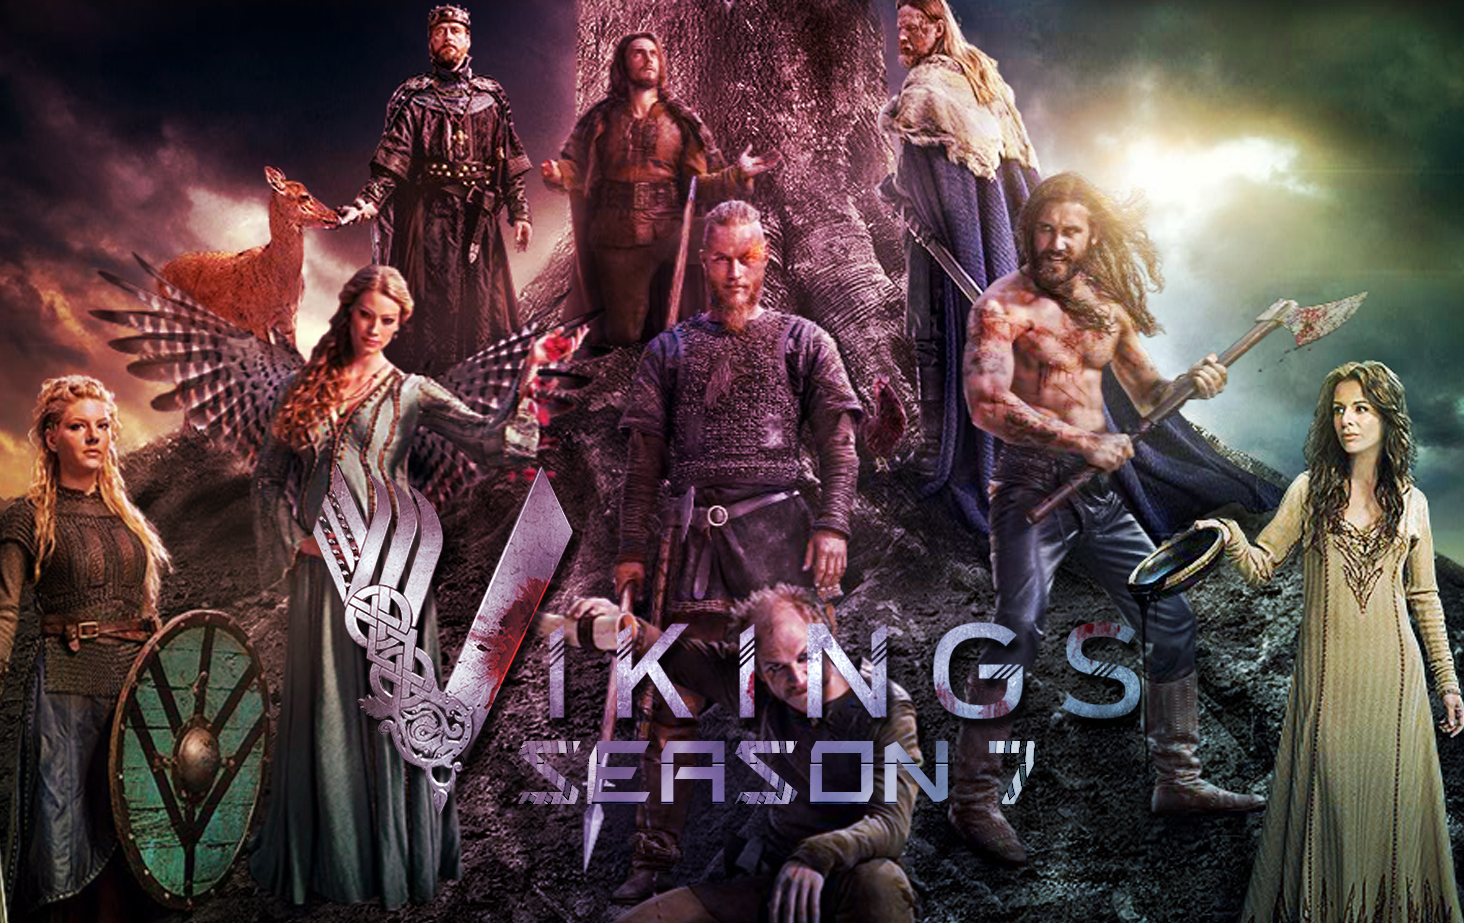 Vikings Season 7: update, Cast, Plot, Trailers and All You Need To Know